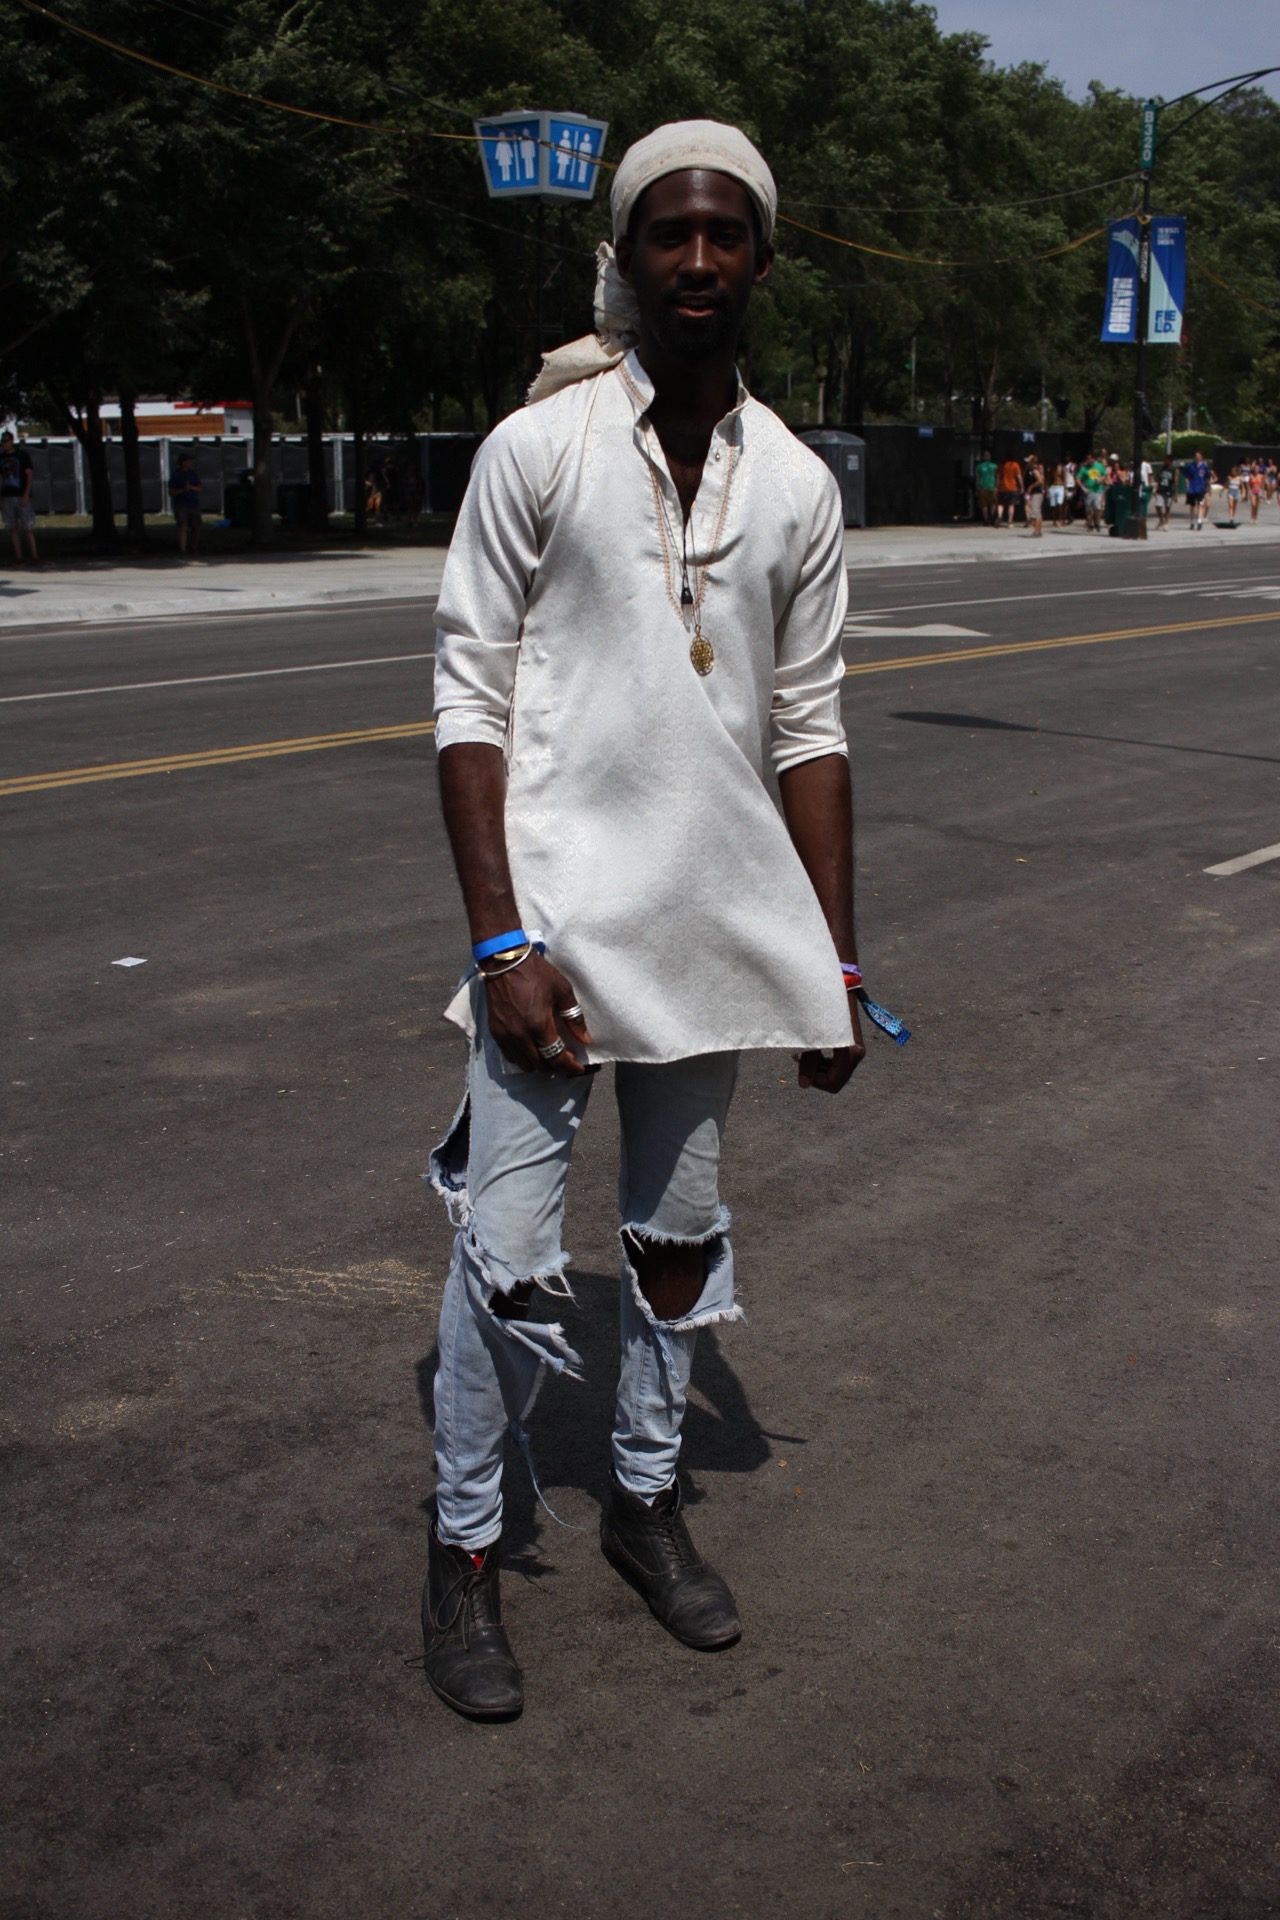 lollapalooza street style 2018 is here  fashionfiles